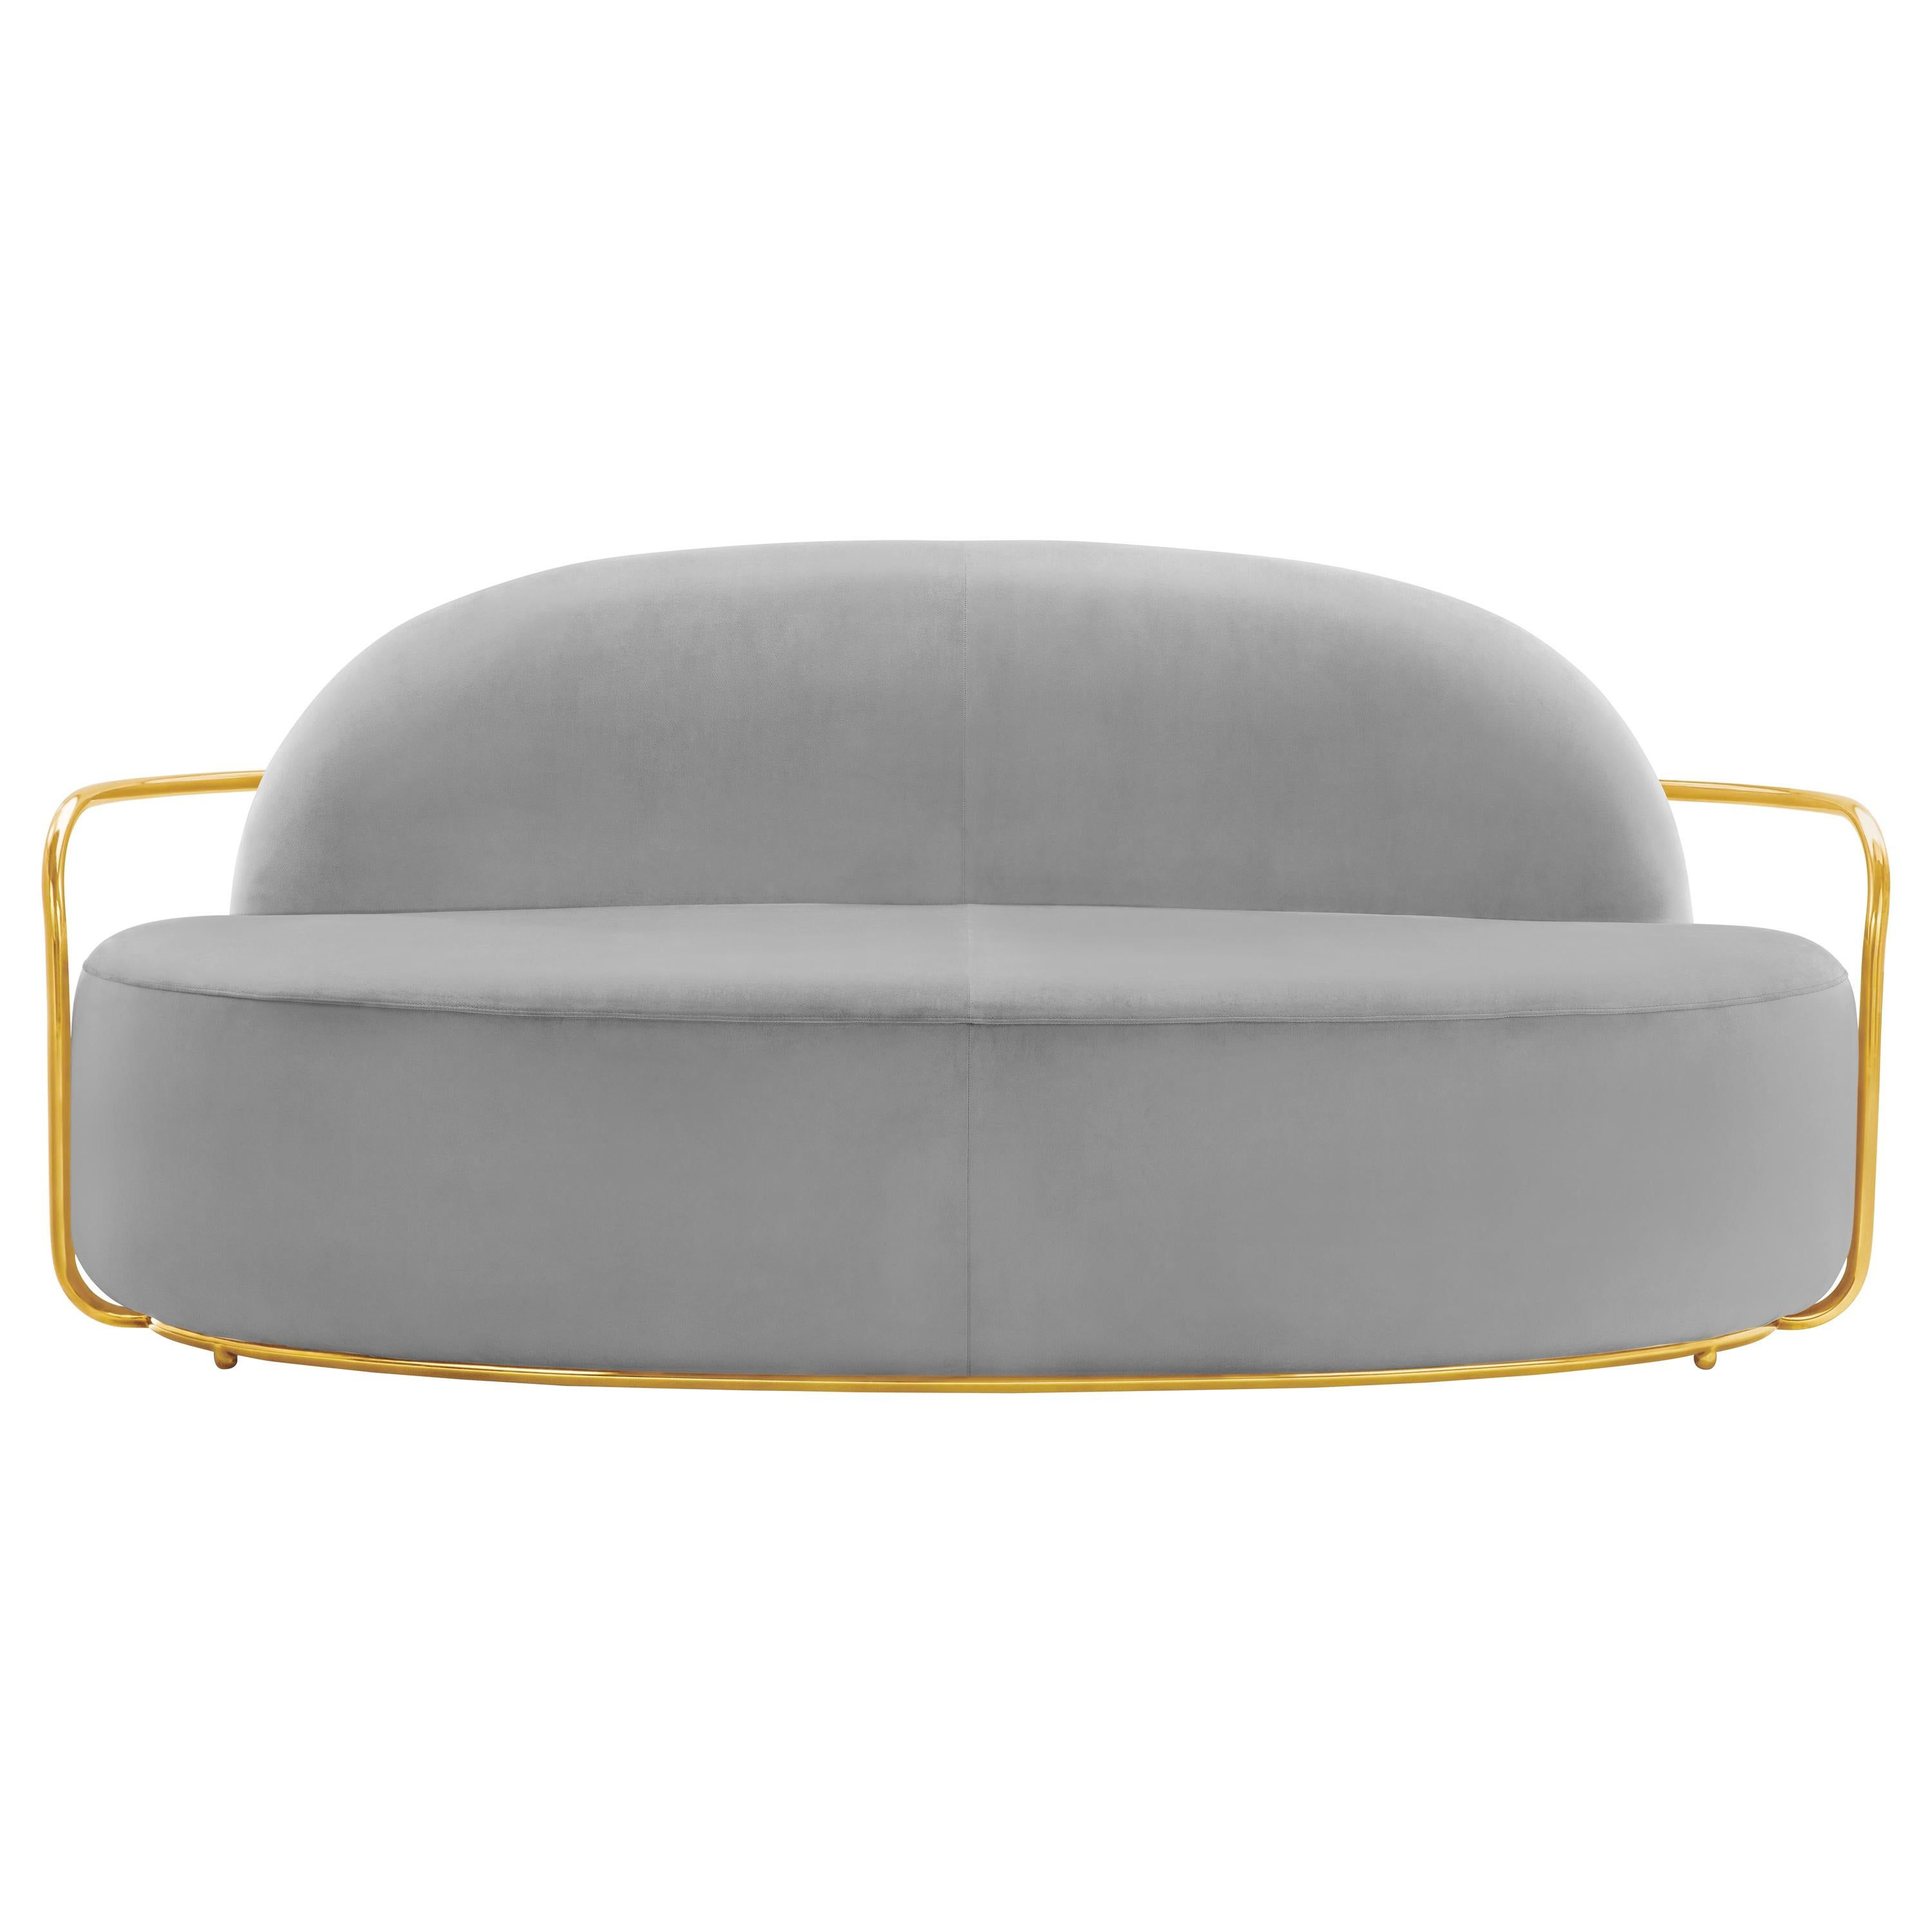 Orion 3 Seat Sofa with Plush Gray Velvet and Gold Arms by Nika Zupanc